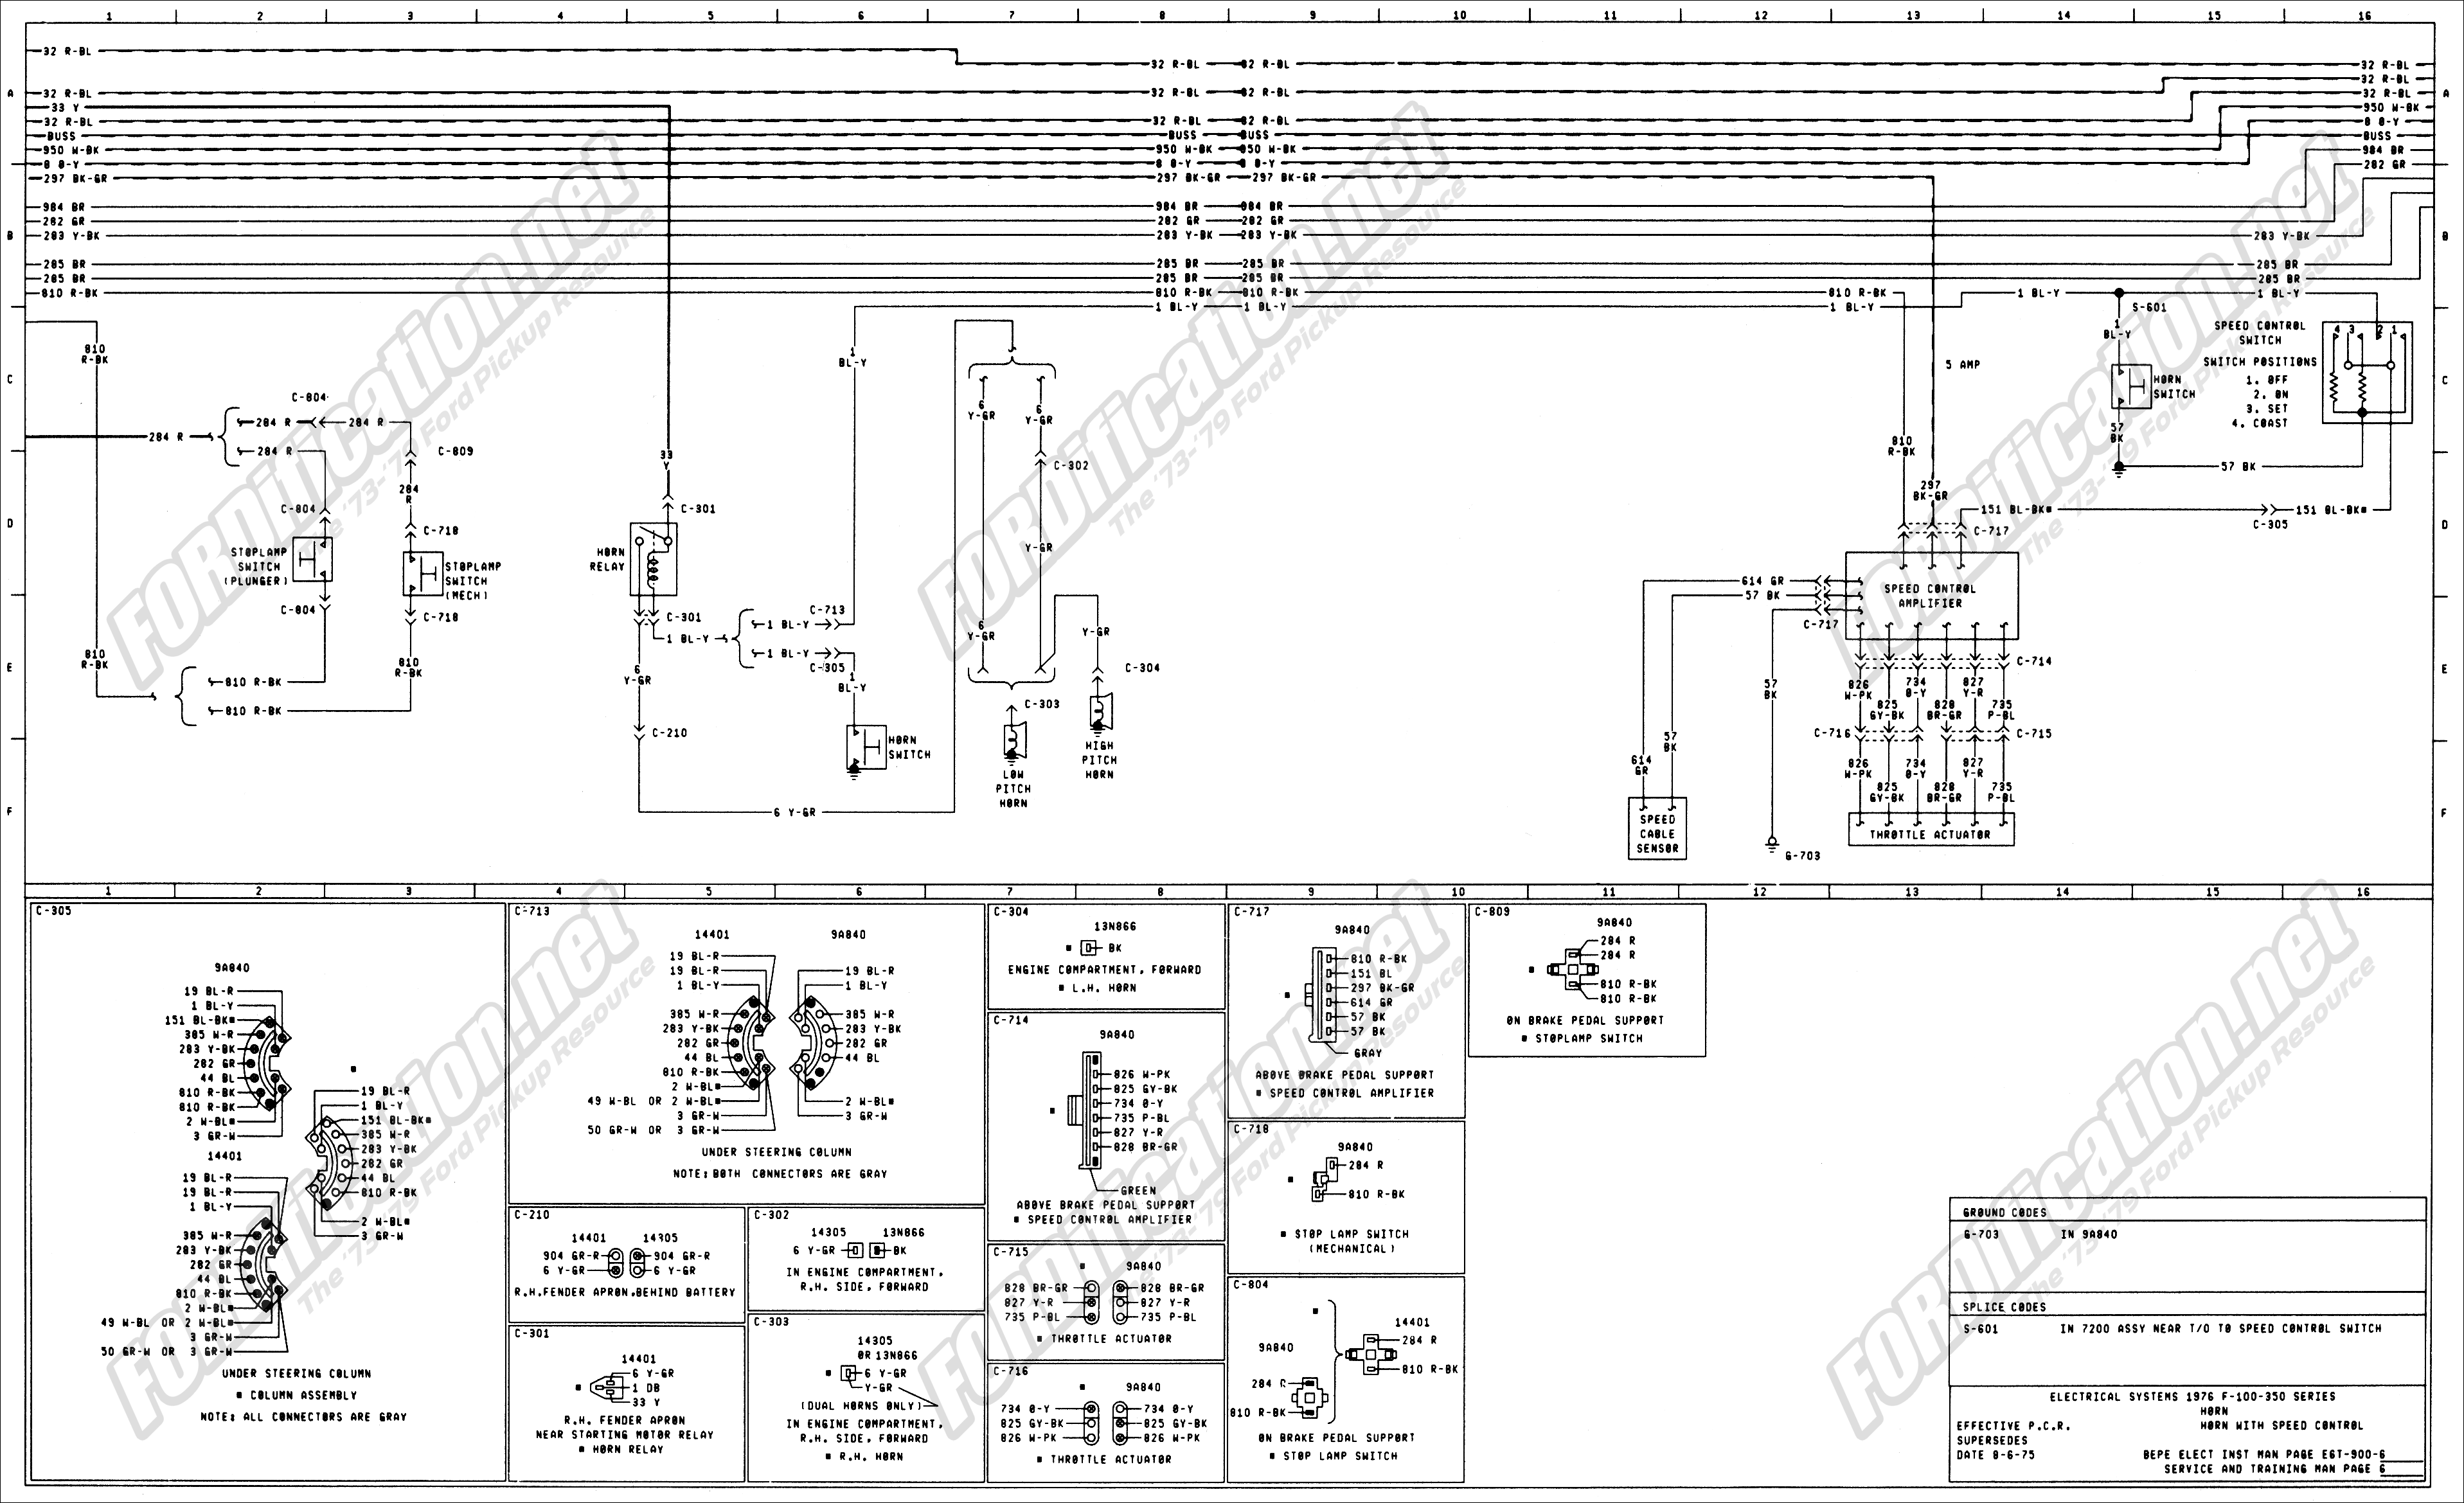 wiring_76master_6of9 1973 1979 ford truck wiring diagrams & schematics fordification net  at bayanpartner.co